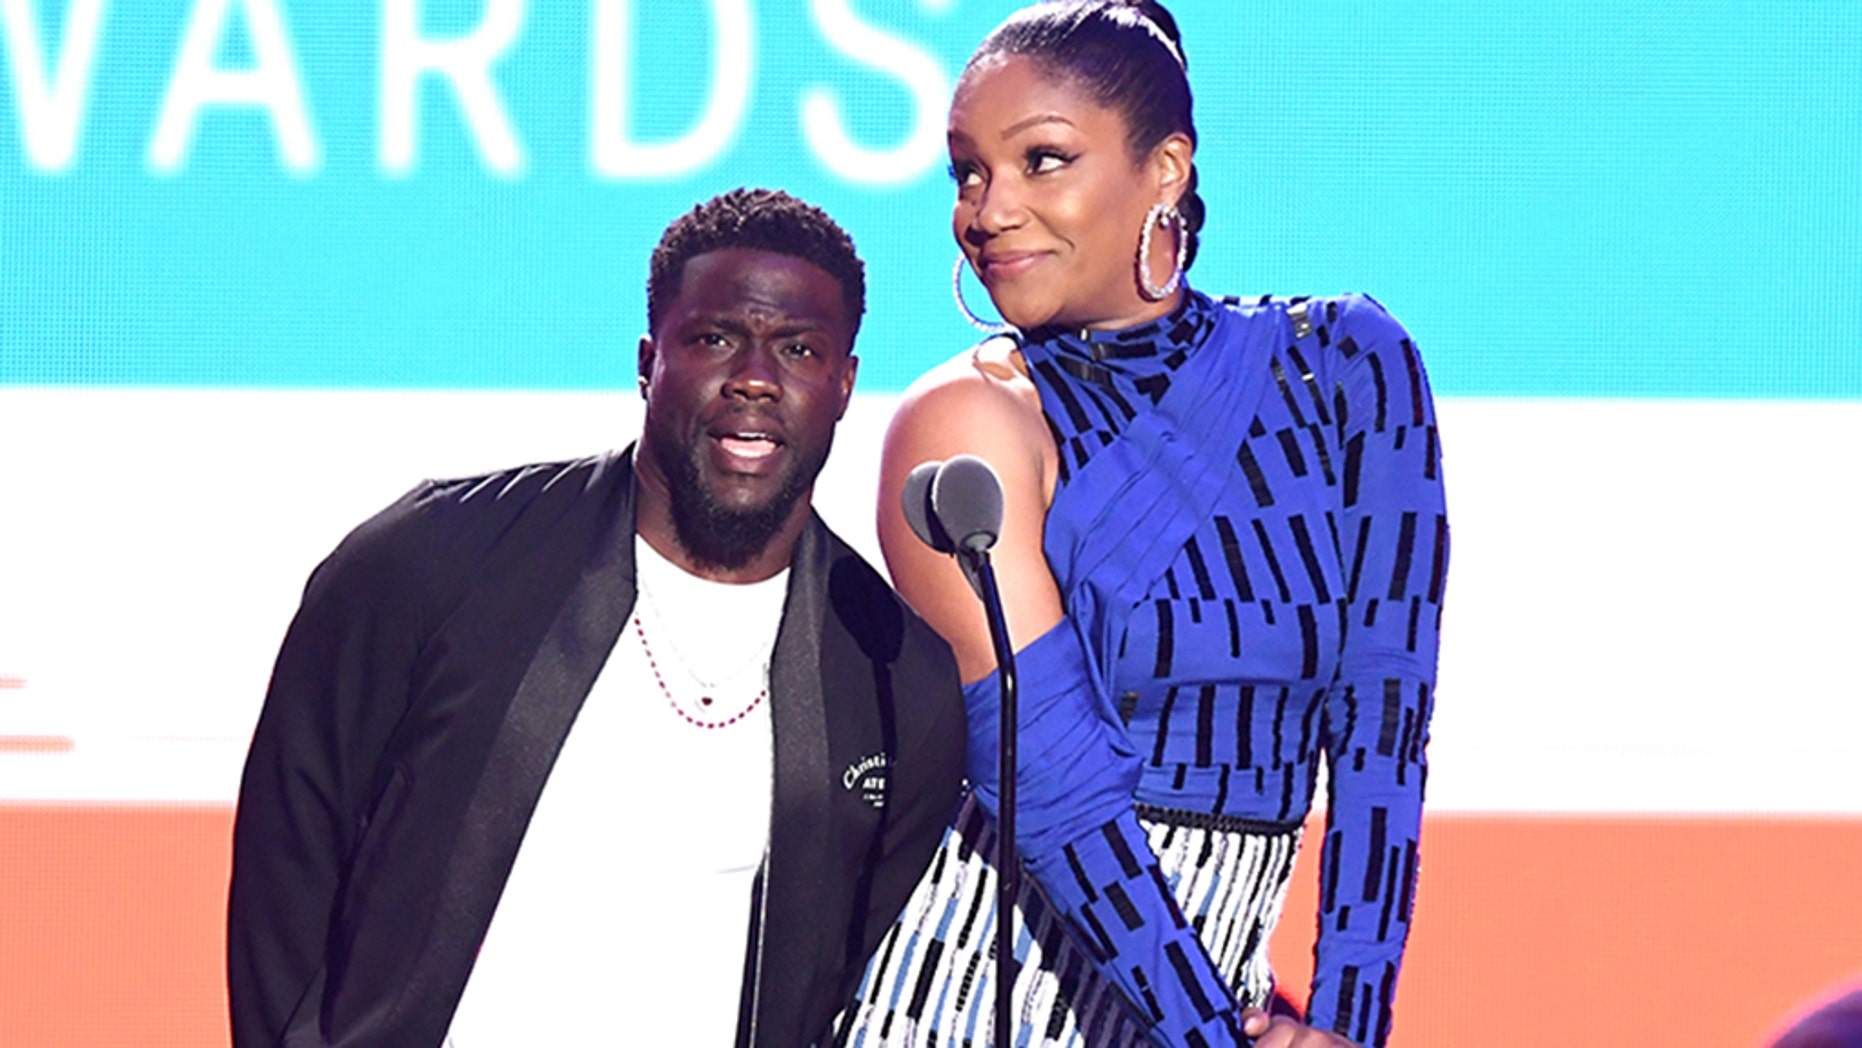 Kevin Hart presented at the 2018 MTV VMAs, where he told the audience in 'This game you're allowed to kneel.'